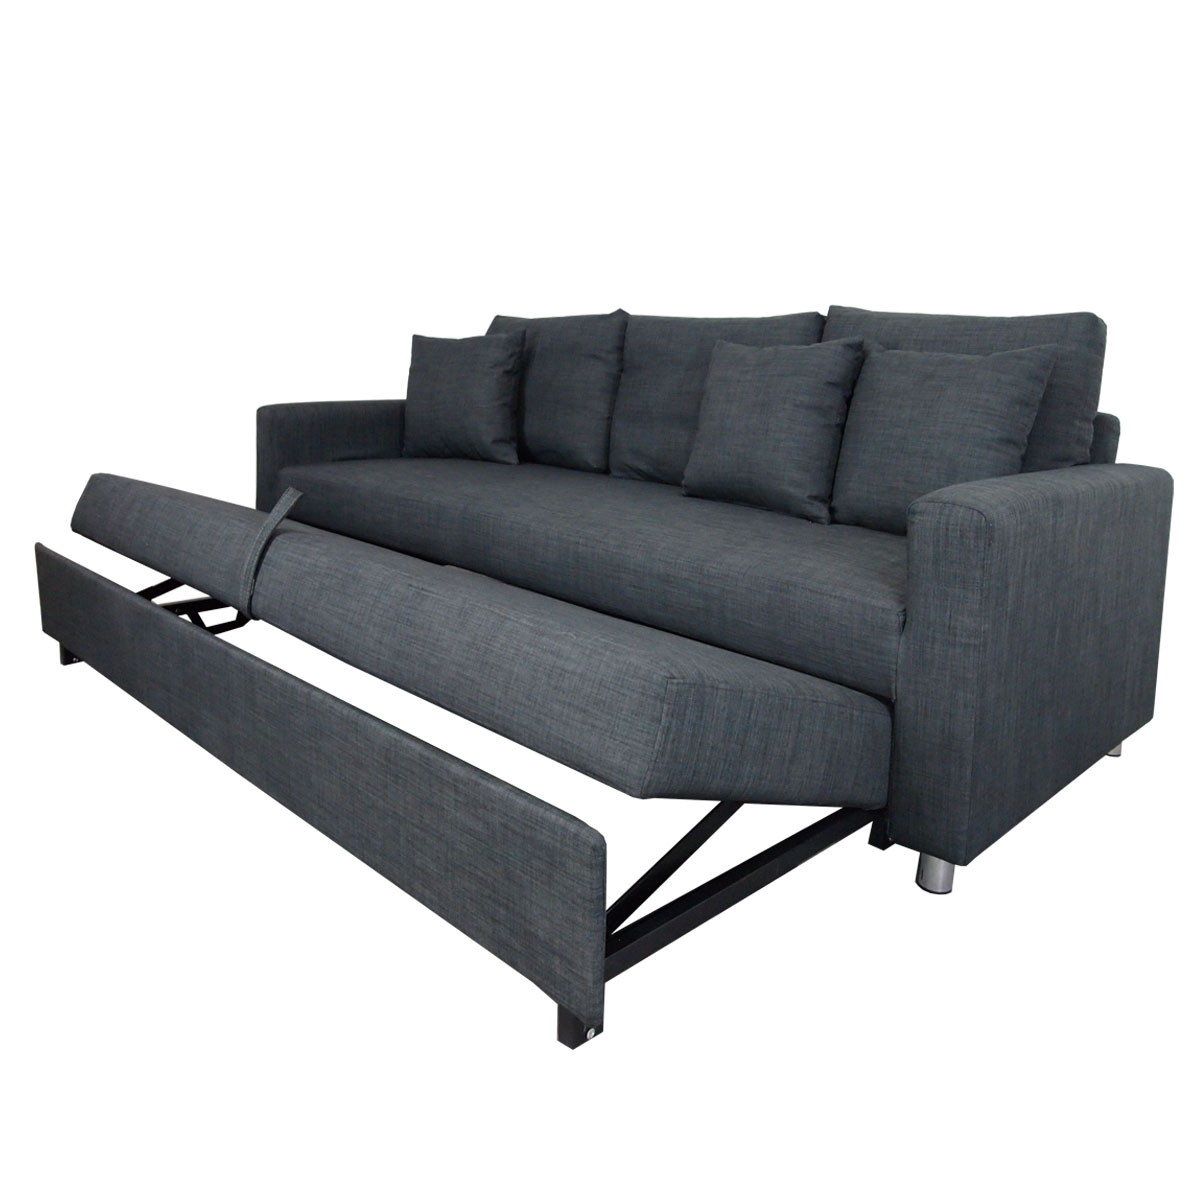 Vernon Sofa Bed Grey 3 Seater Regular Price S 1 159 90